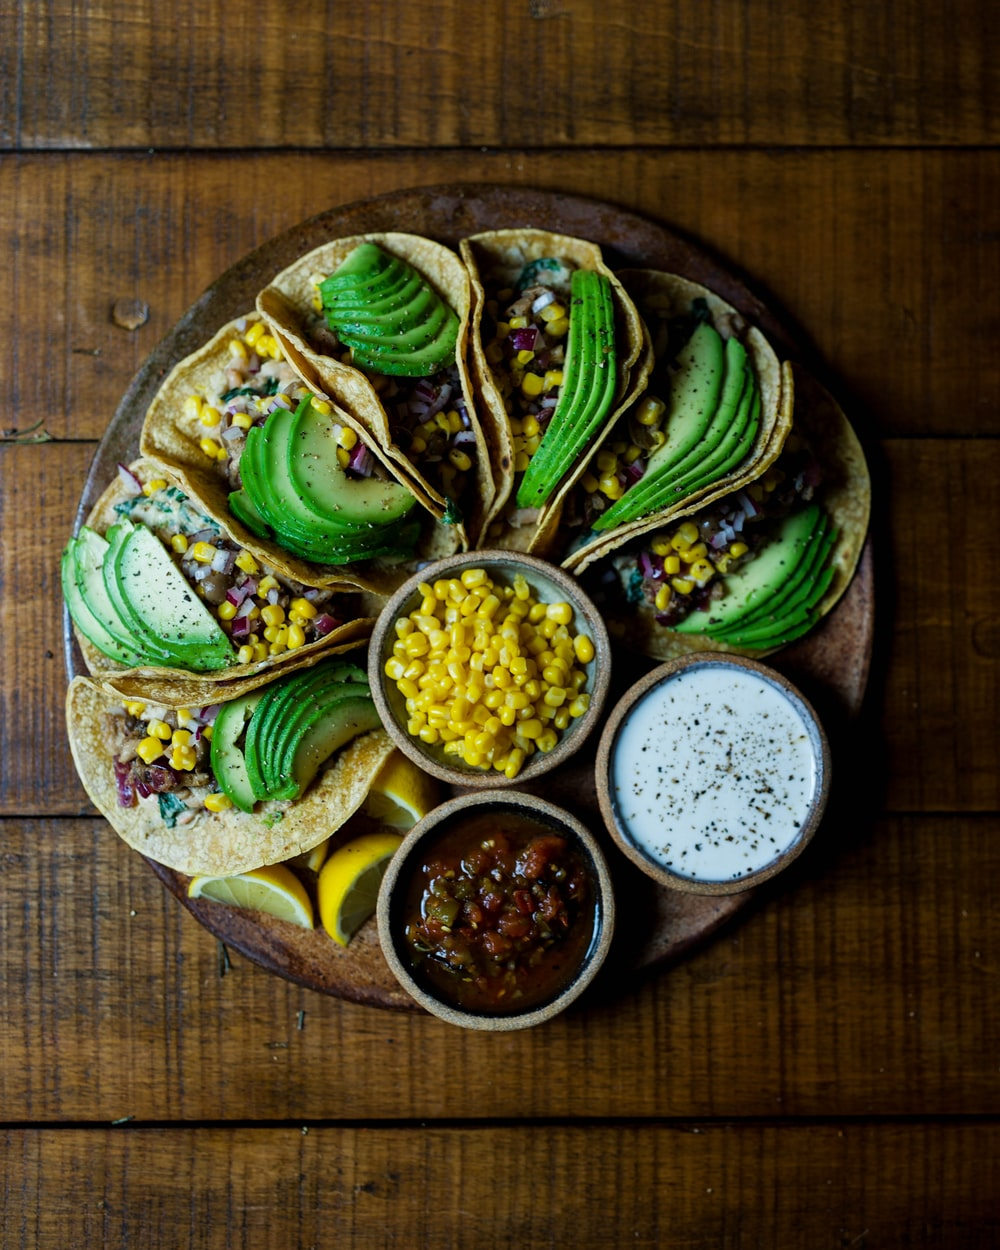 Photo Via: https://unsplash.com/photos/J04BD4ysoh8, avocado tacos on a healthy platter for presentation with corn and salsas.